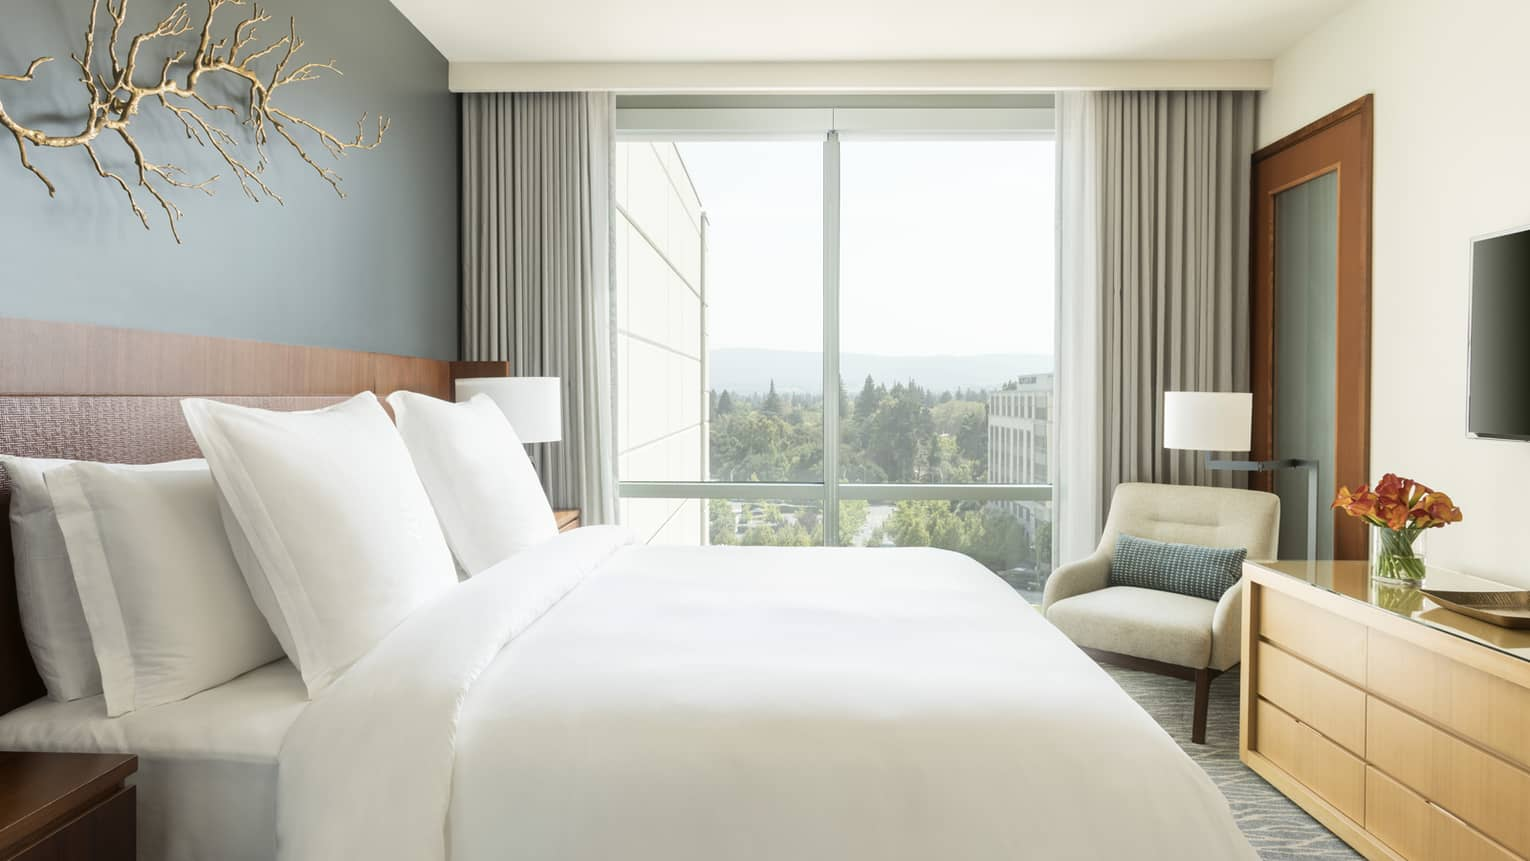 Modern, bright hotel room with gold branch on wall above bed, floor-to-ceiling window